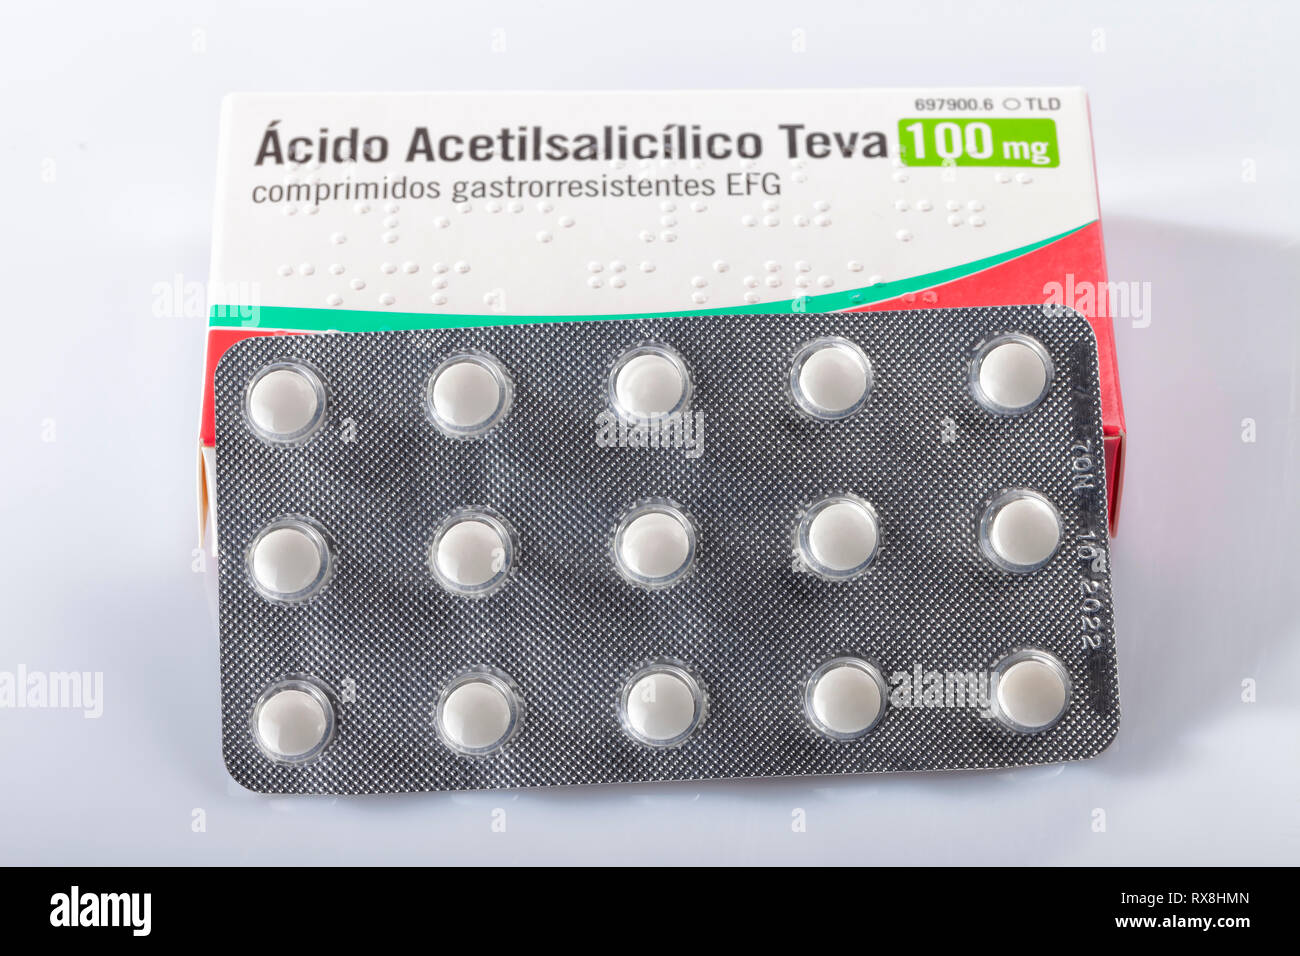 A box of acetylsalicylic acid tablets isolated on white. Infantile aspirin. Photo taken in Madrid, Spain, on March 8, 2019. - Stock Image